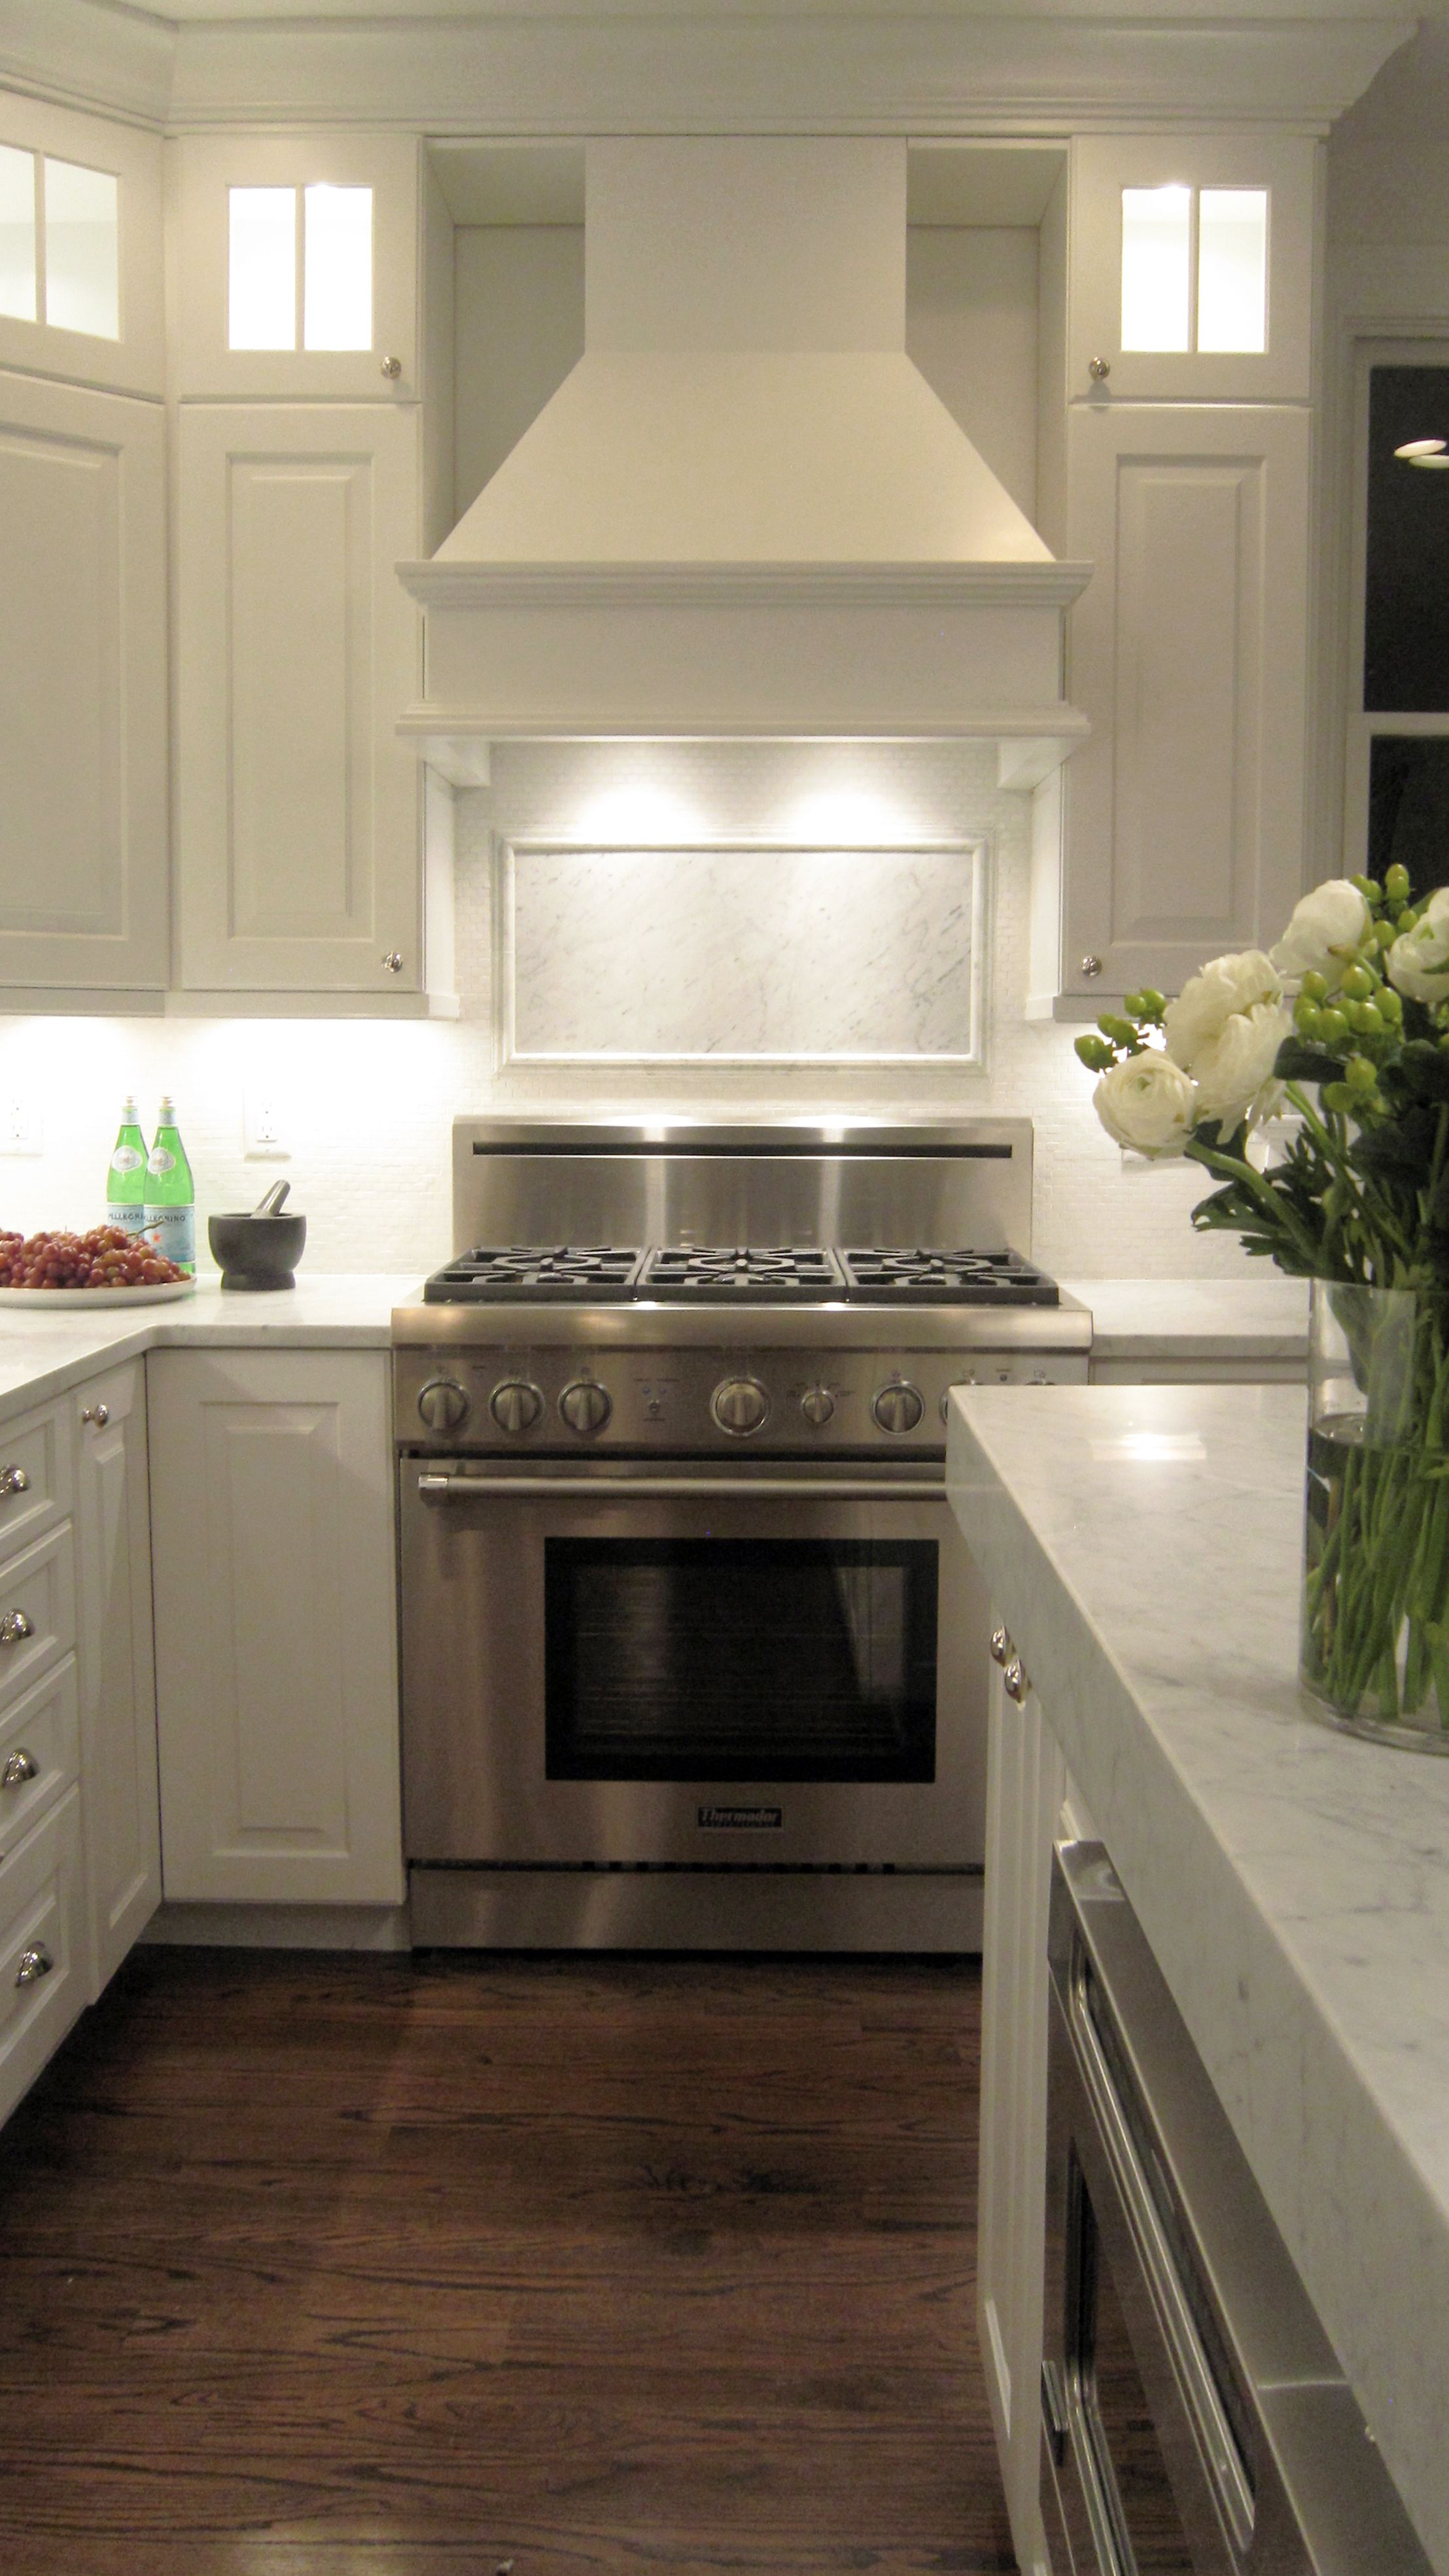 Beacon st kitchen carrara marble countertops and accent for Kitchen medallion backsplash